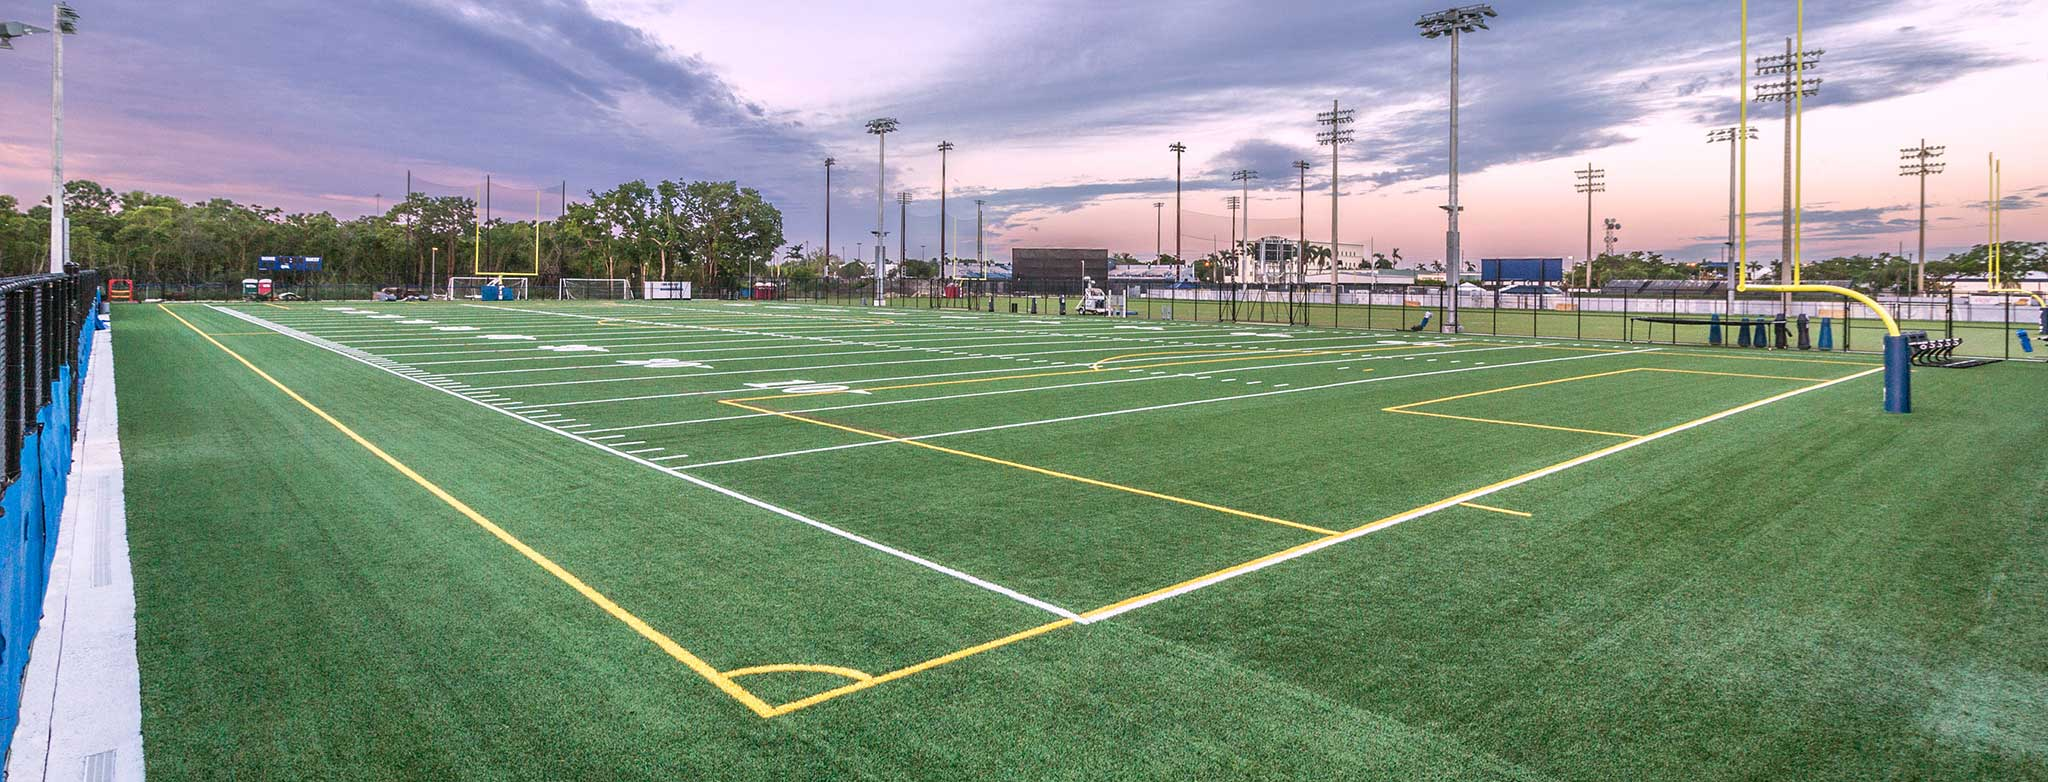 FIU Practice Fields - Artificial Turf